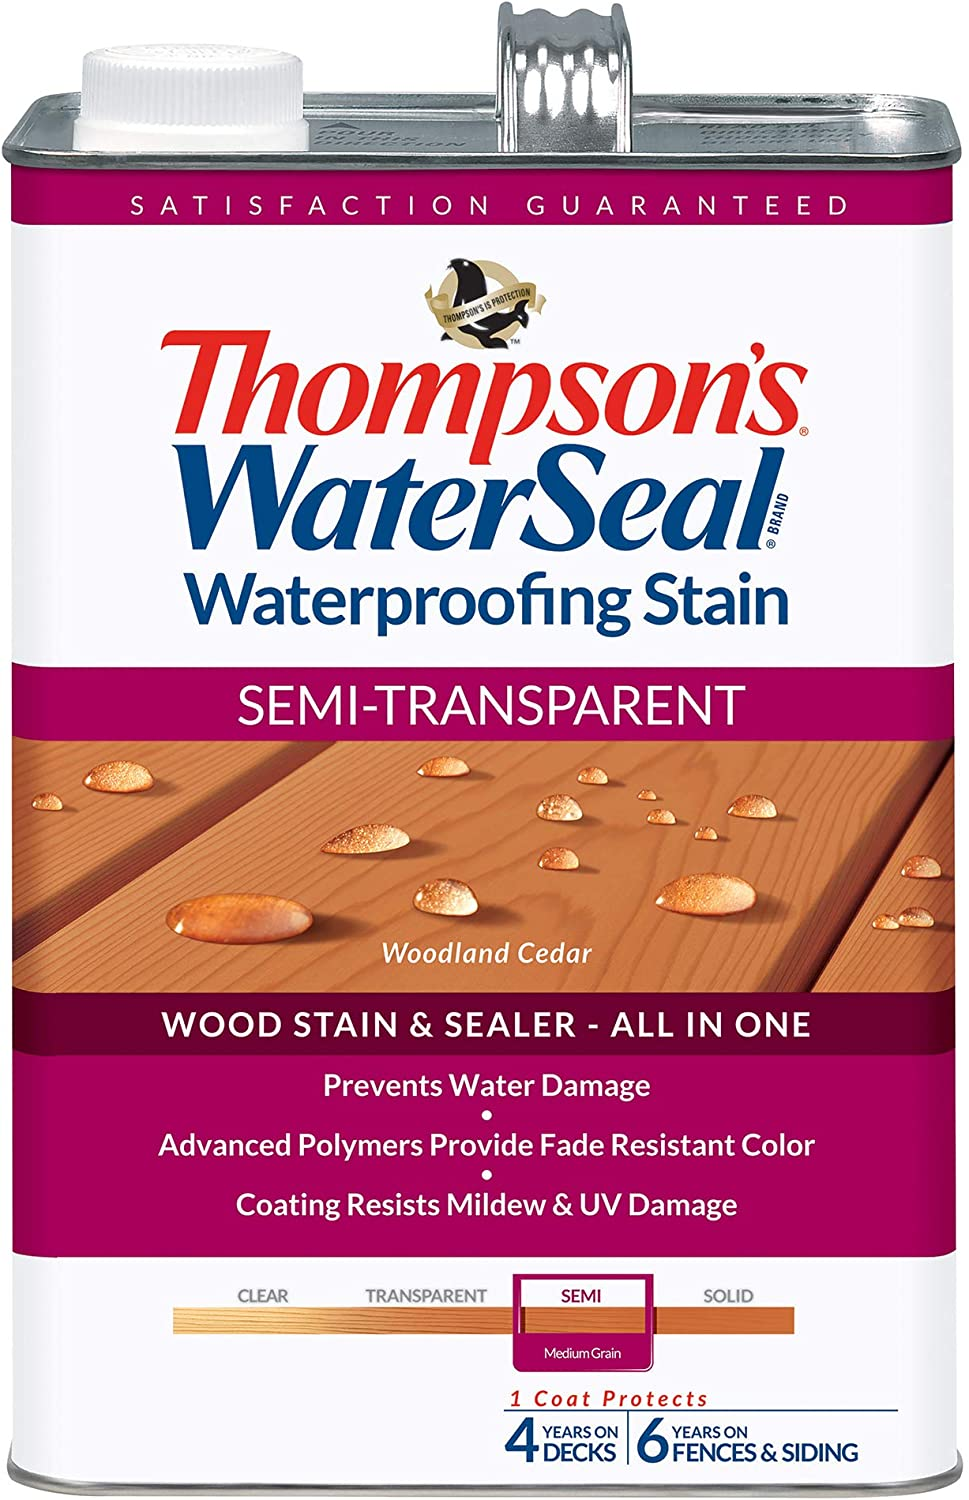 Thompsons Water-Seal Semi-Transparent Waterproofing Stain review